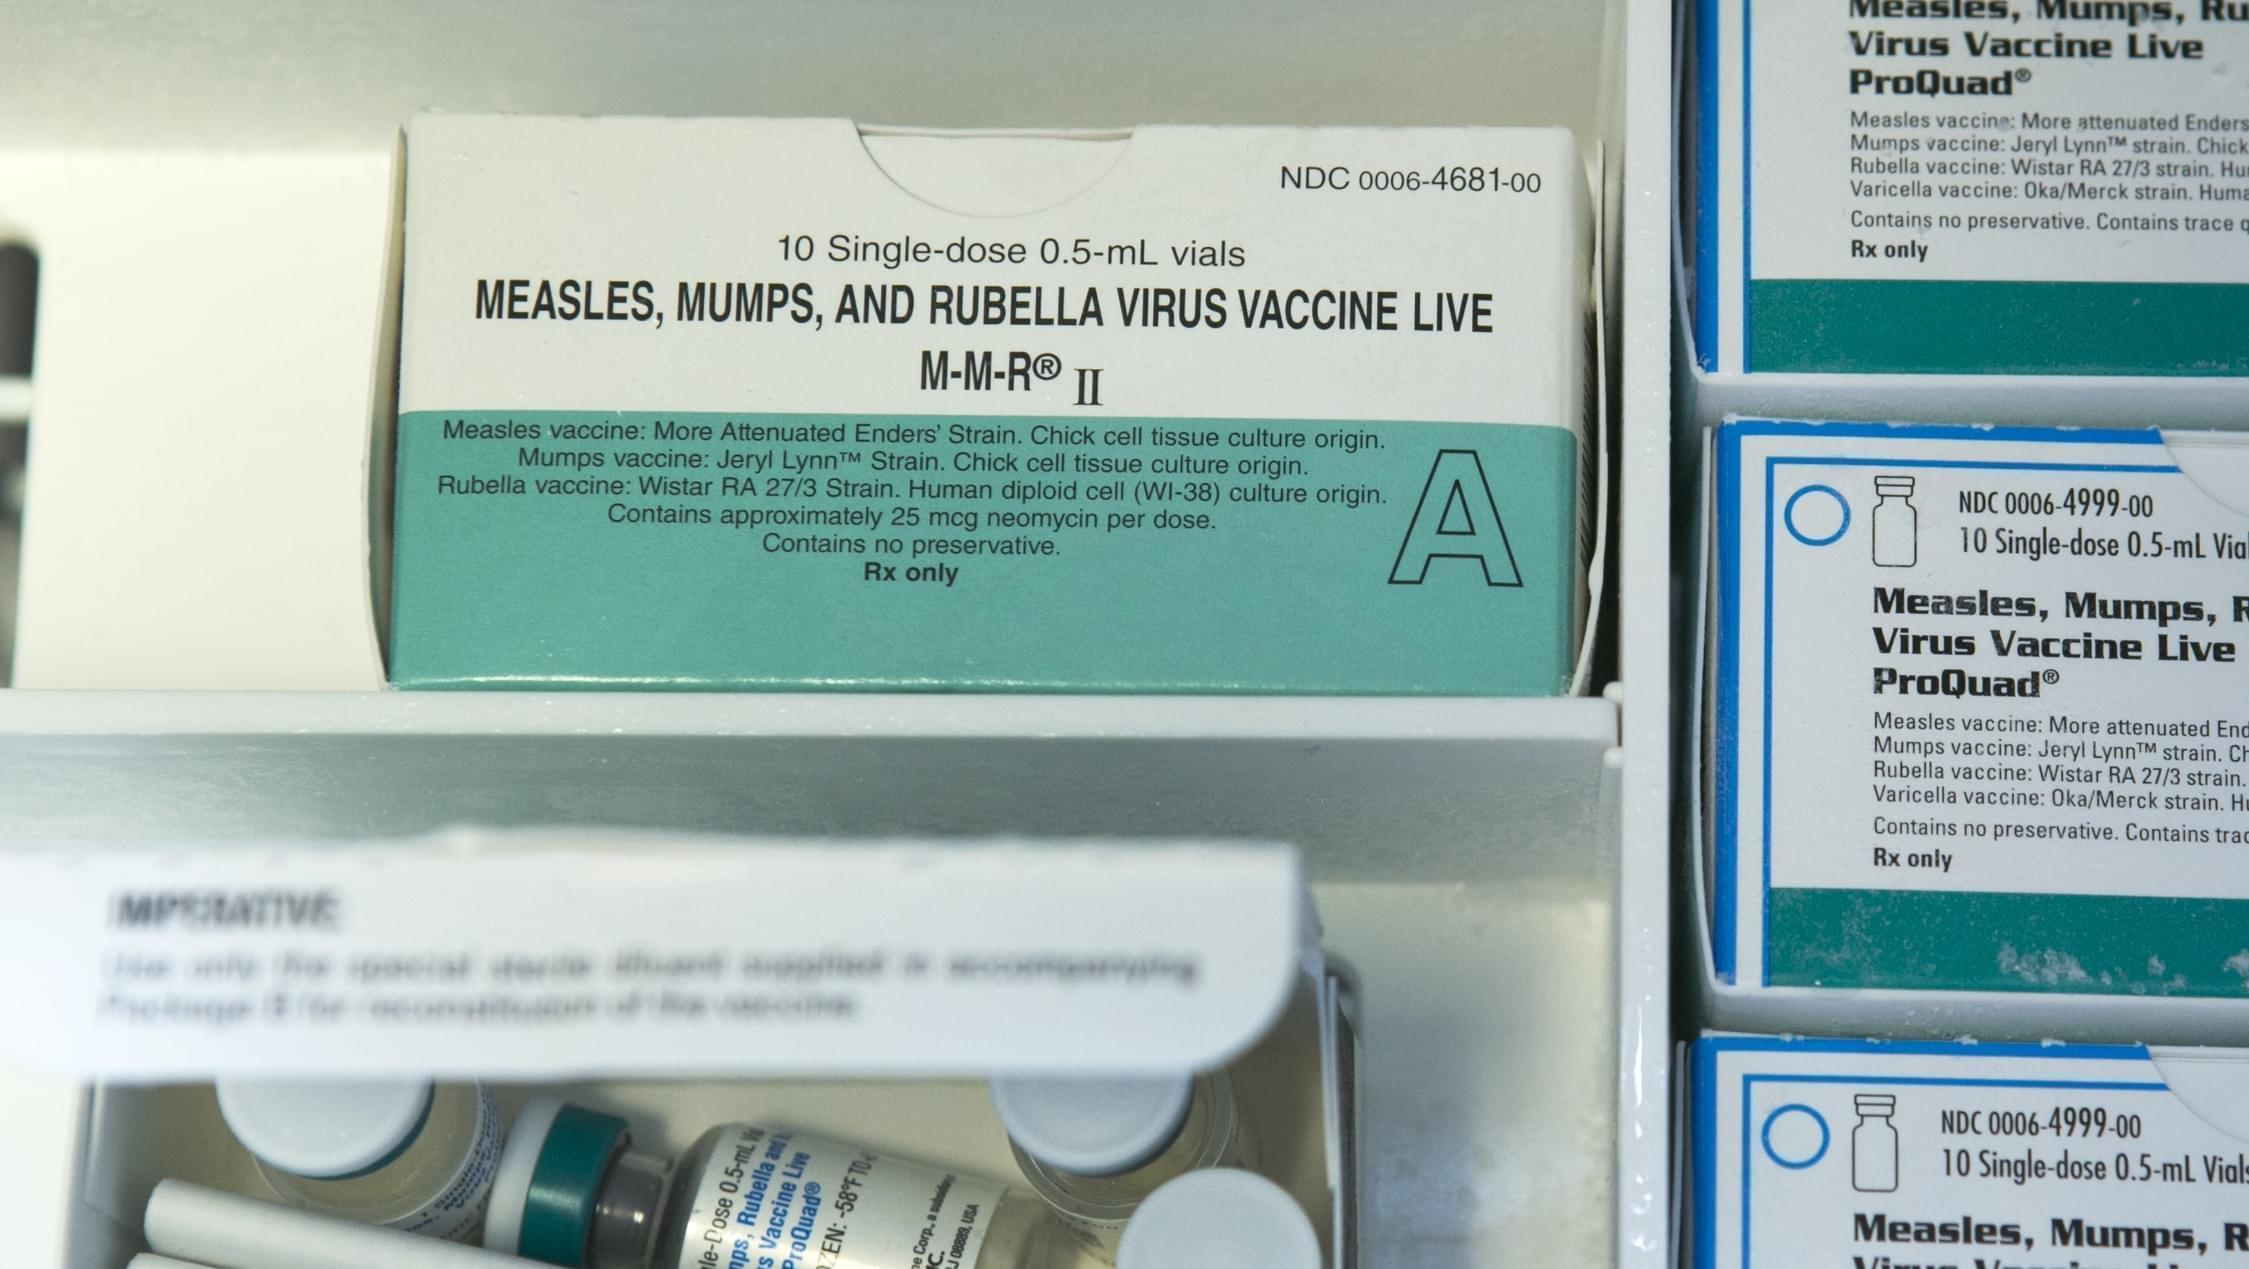 In this Thursday, Jan. 29, 2015, photo, boxes of single-doses vials of the measles-mumps-rubella virus vaccine live, or MMR vaccine and ProQuad vaccine are keep frozen inside a freezer at the practice of Dr. Charles Goodman in Northridge, Calif.